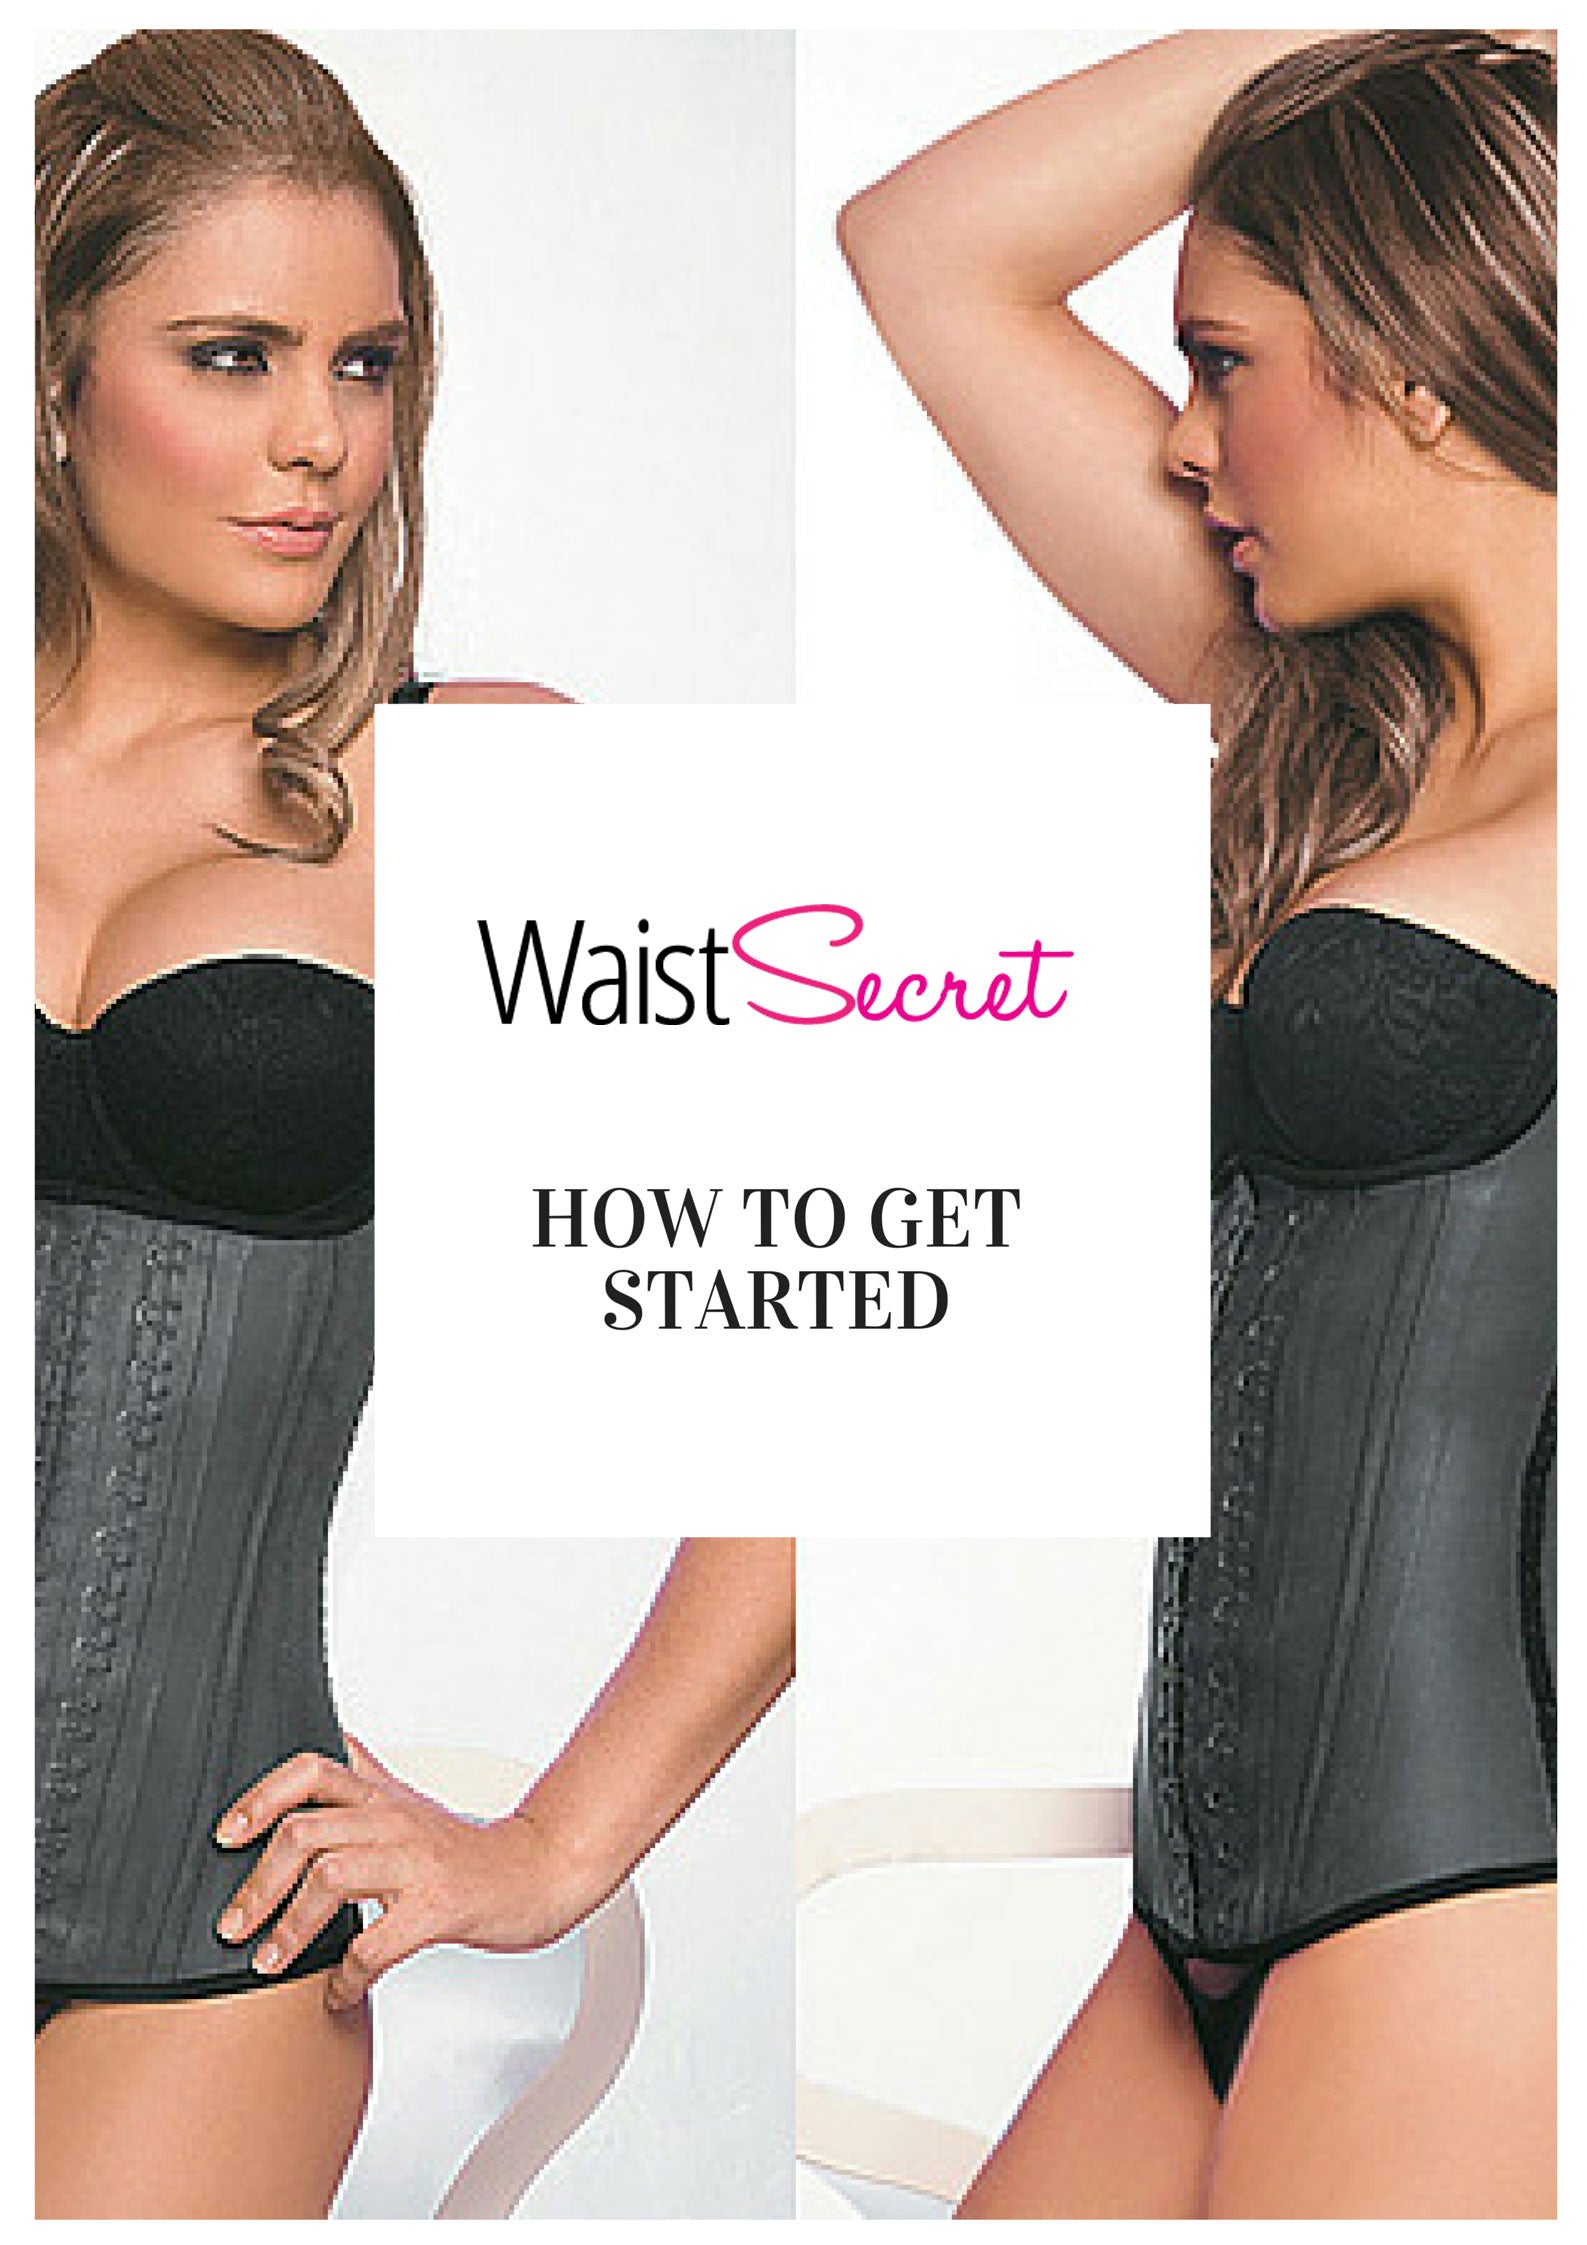 55d86399ab We at WaistSecret want you to enjoy your journey into waist training. It is  important to pick out the right kind of waist trainer. If you are starting  out